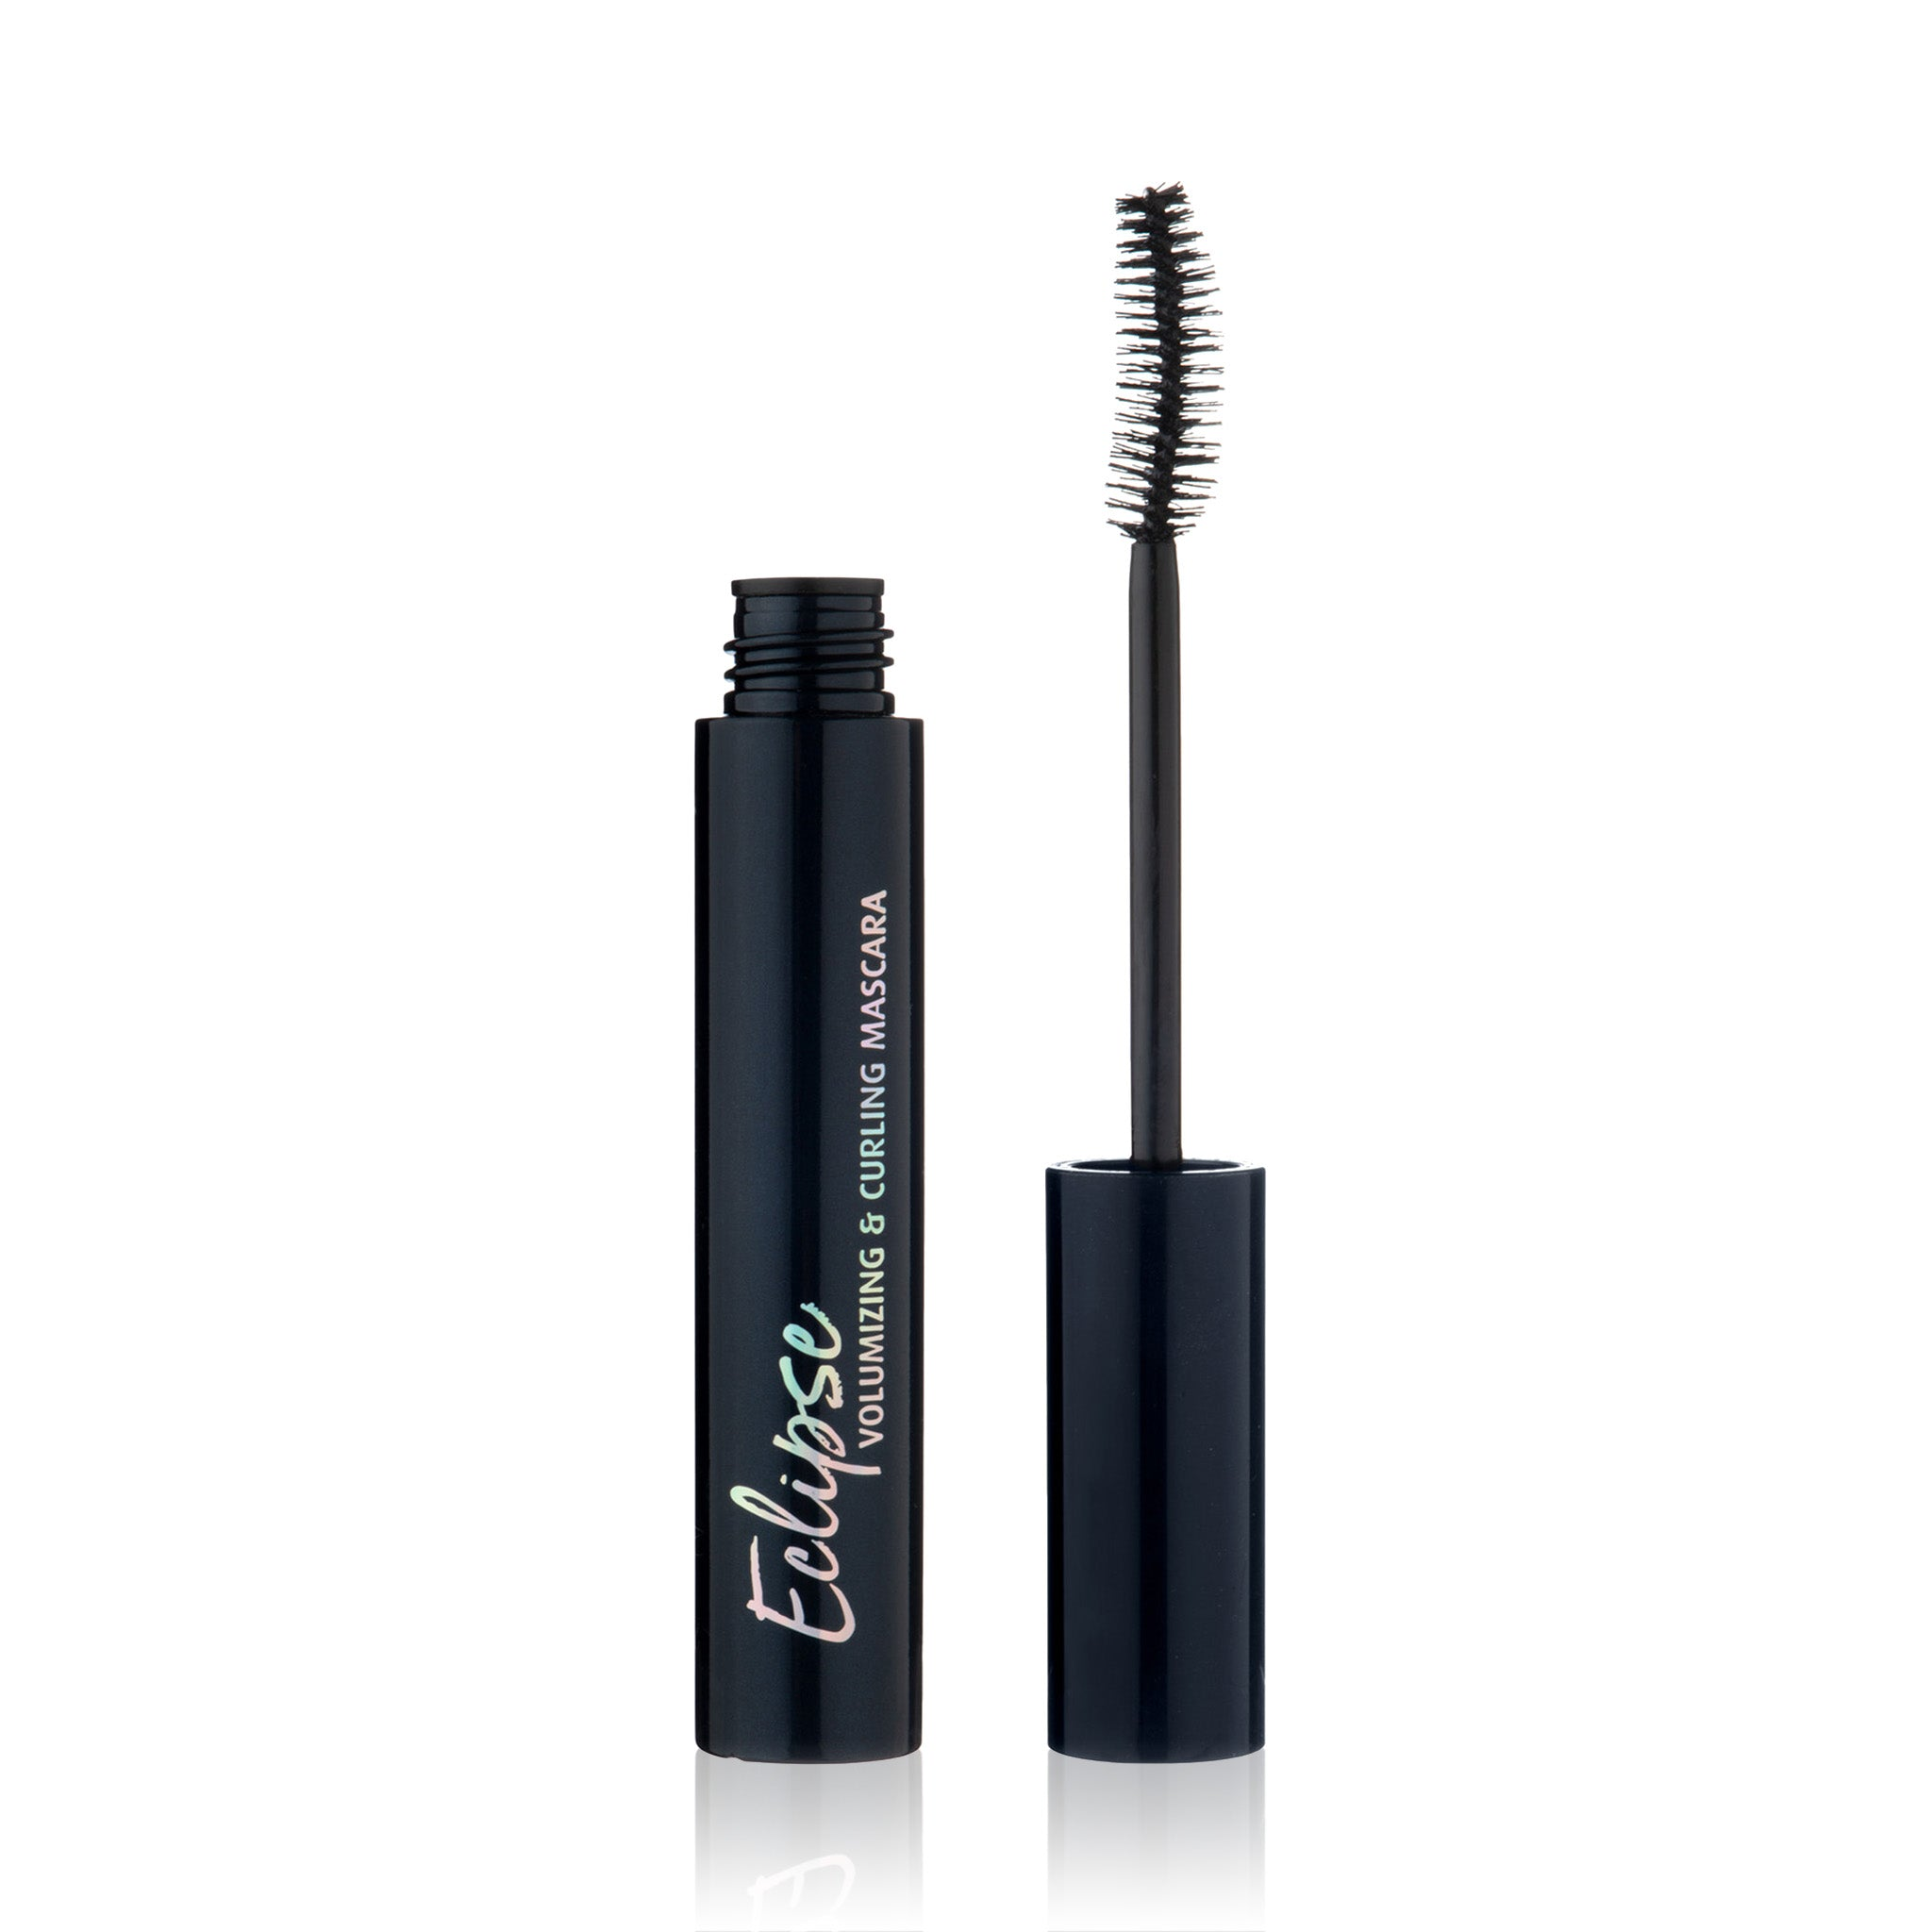 Lune+Aster Eclipse Volumizing & Curling Mascara opened